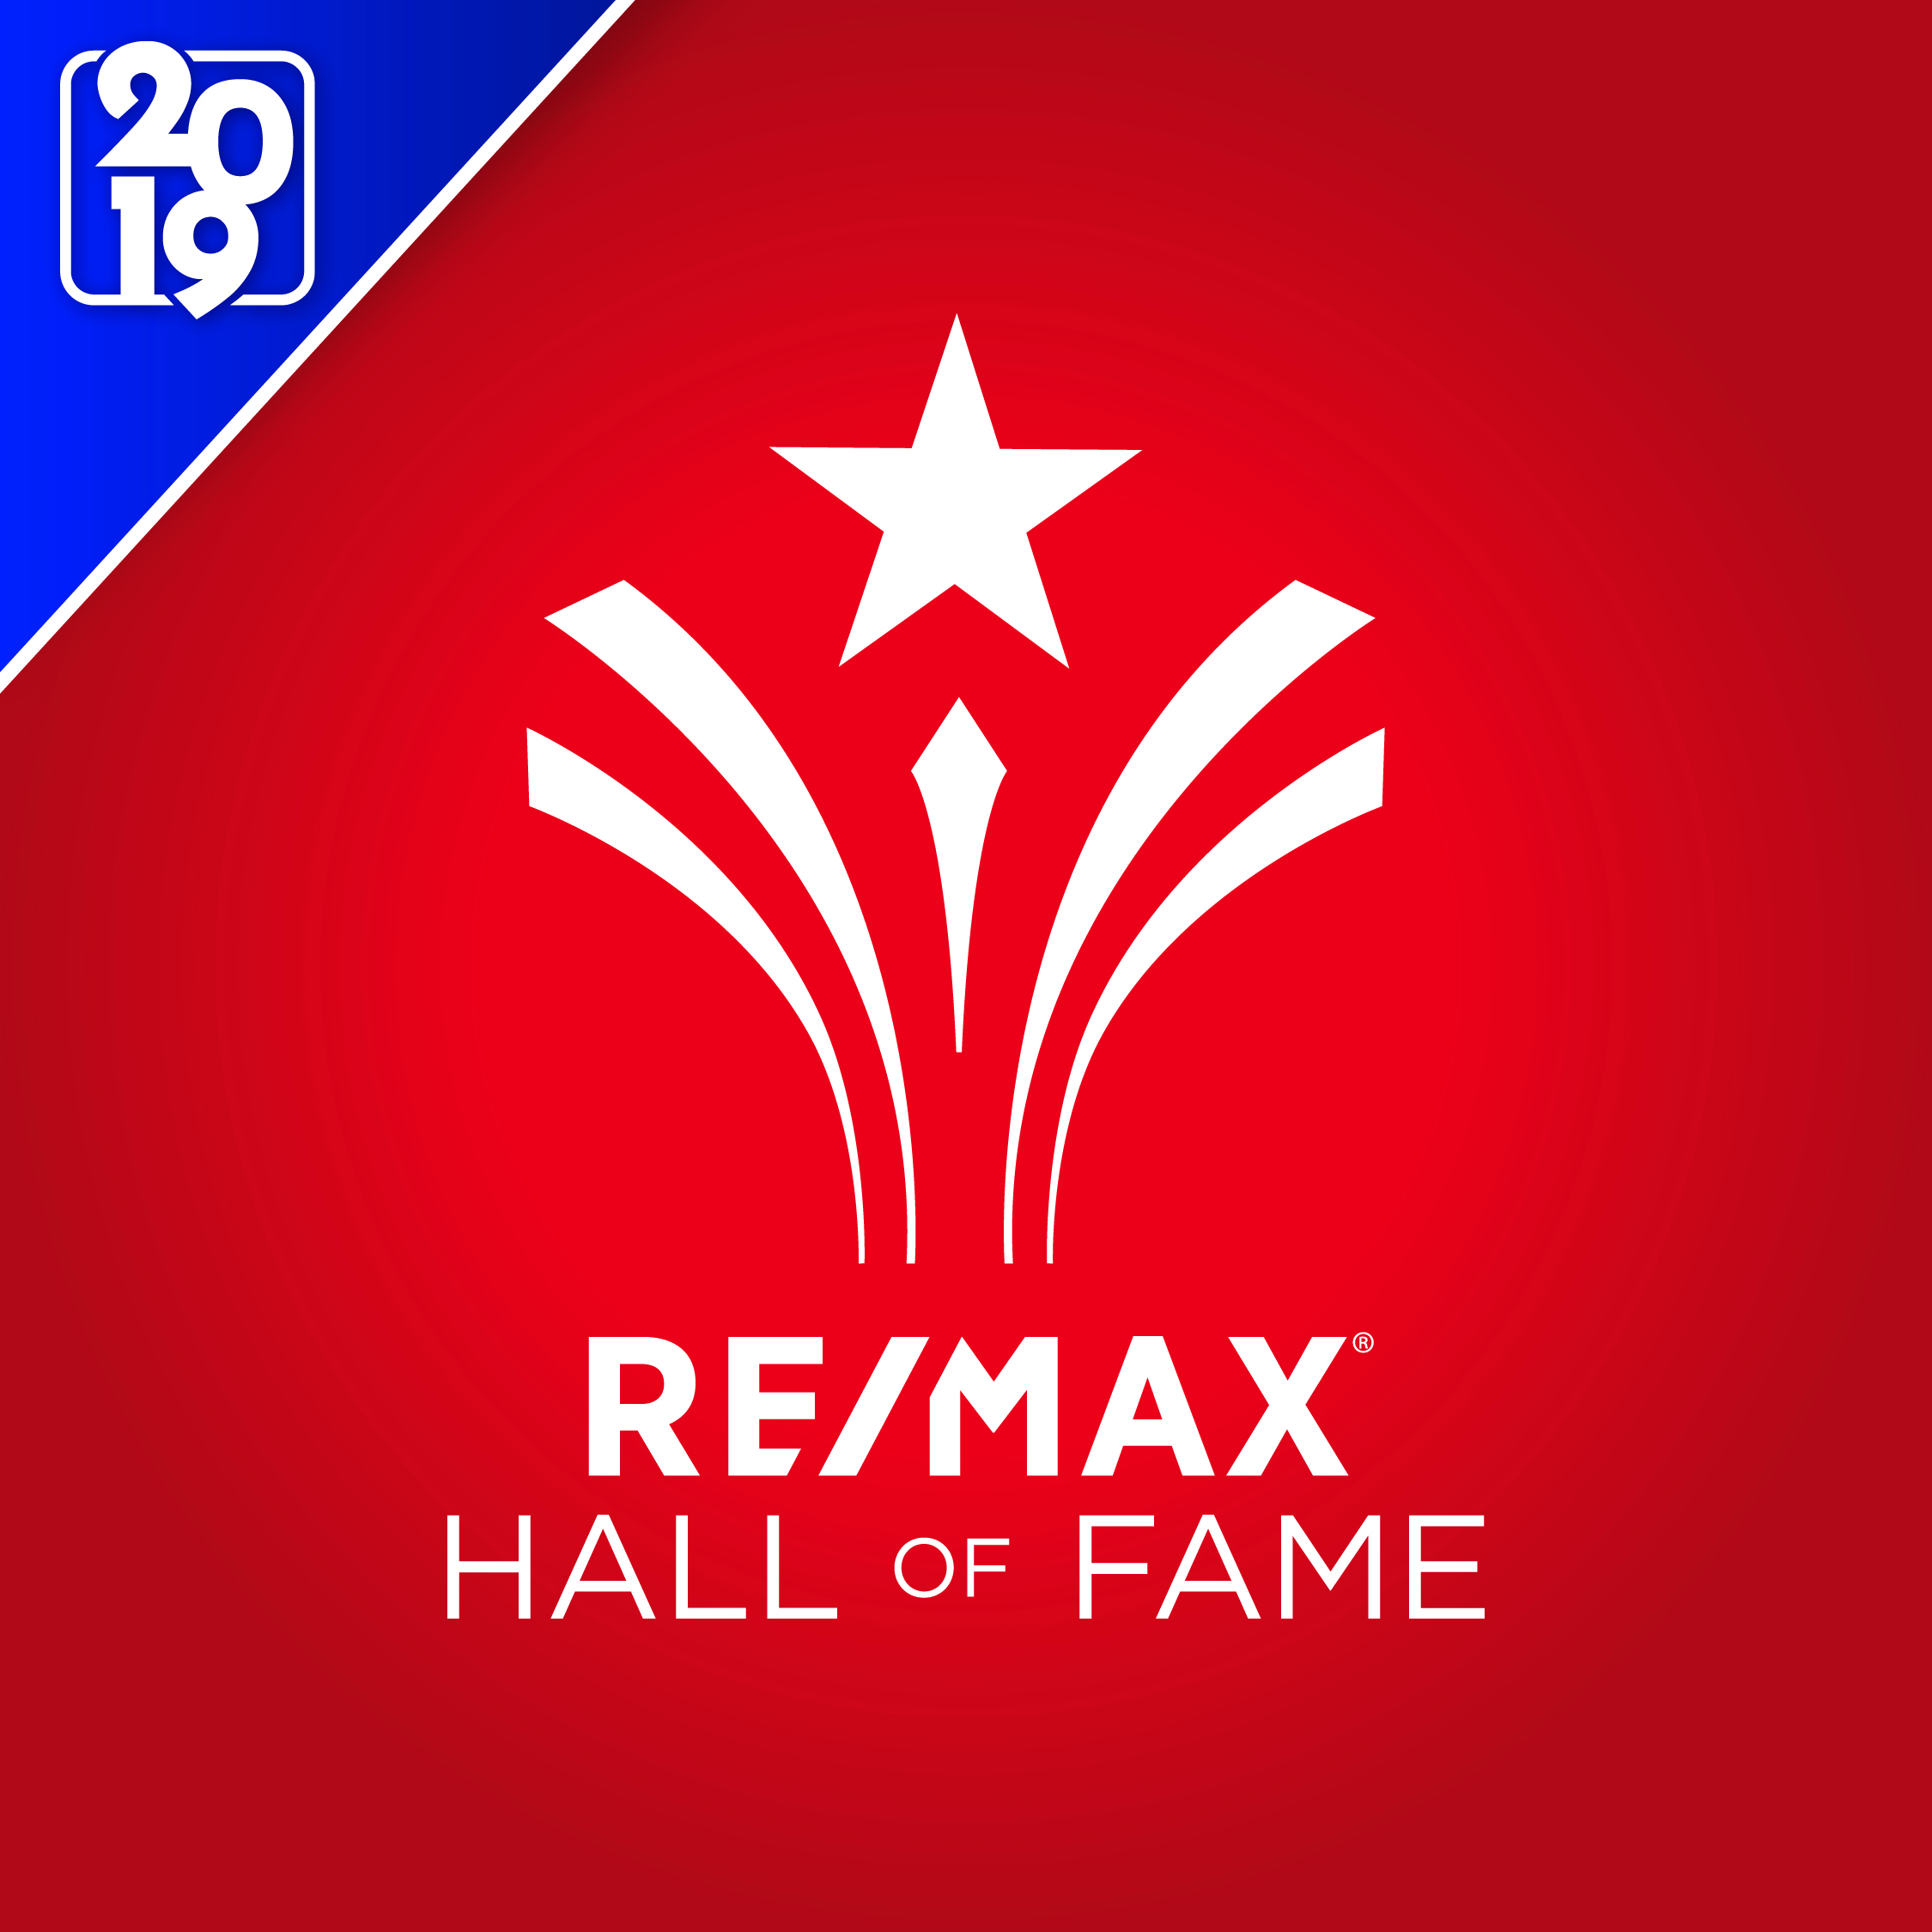 RE/MAX Hall of Fame 2019 image